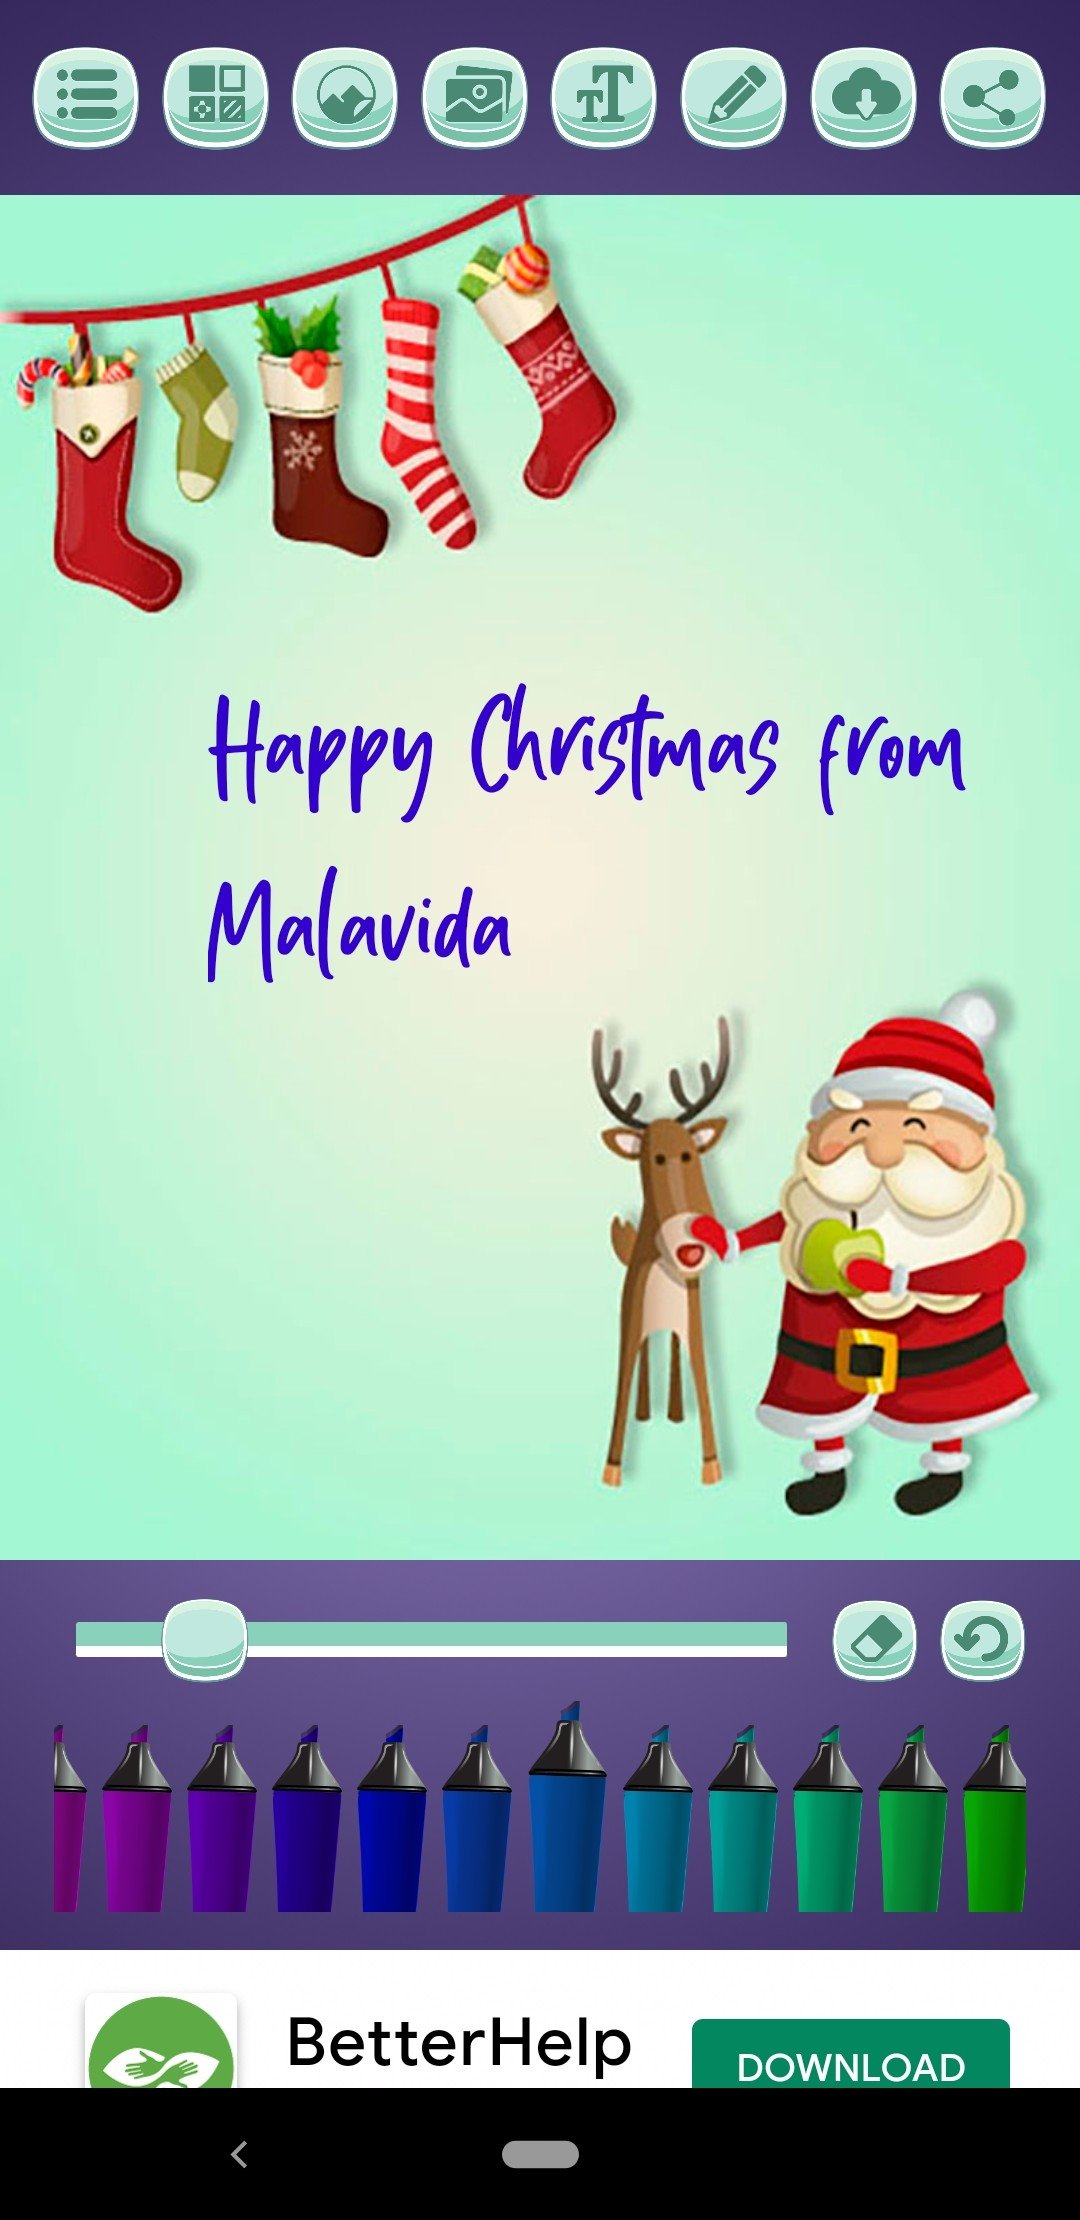 Create Christmas Cards Android image 5